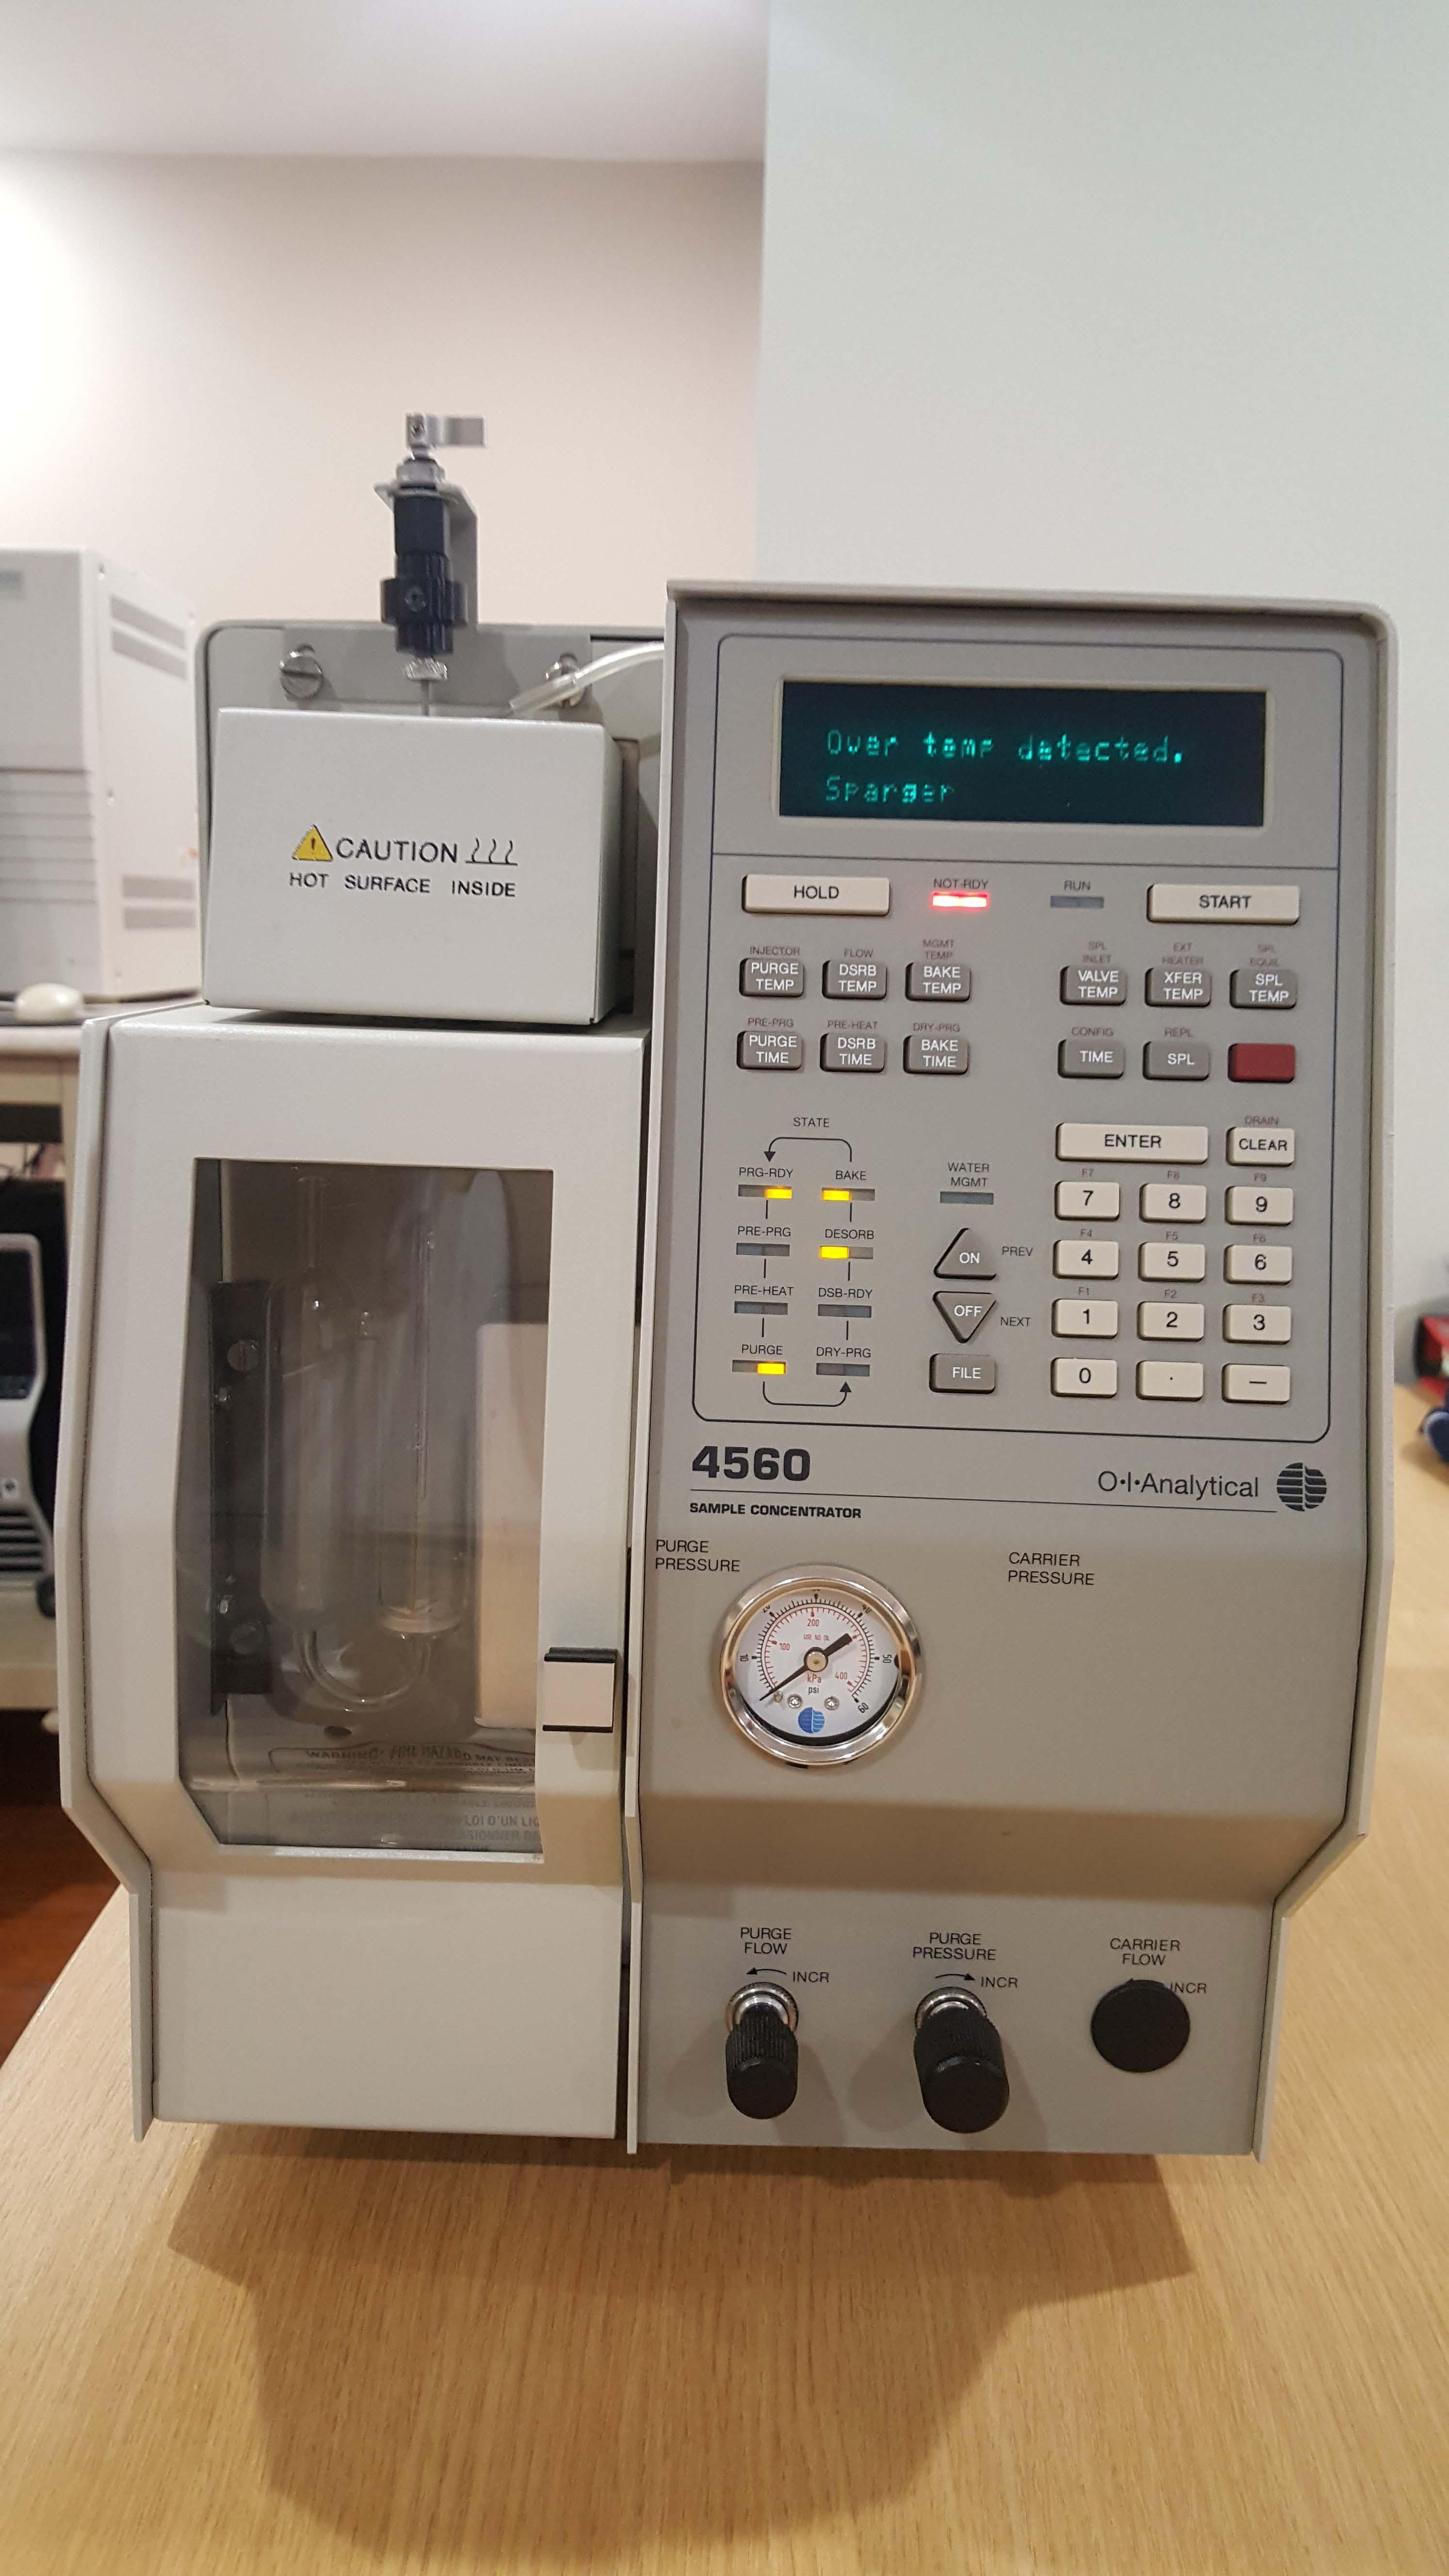 OI Analytical 4560 Sample Concentrator